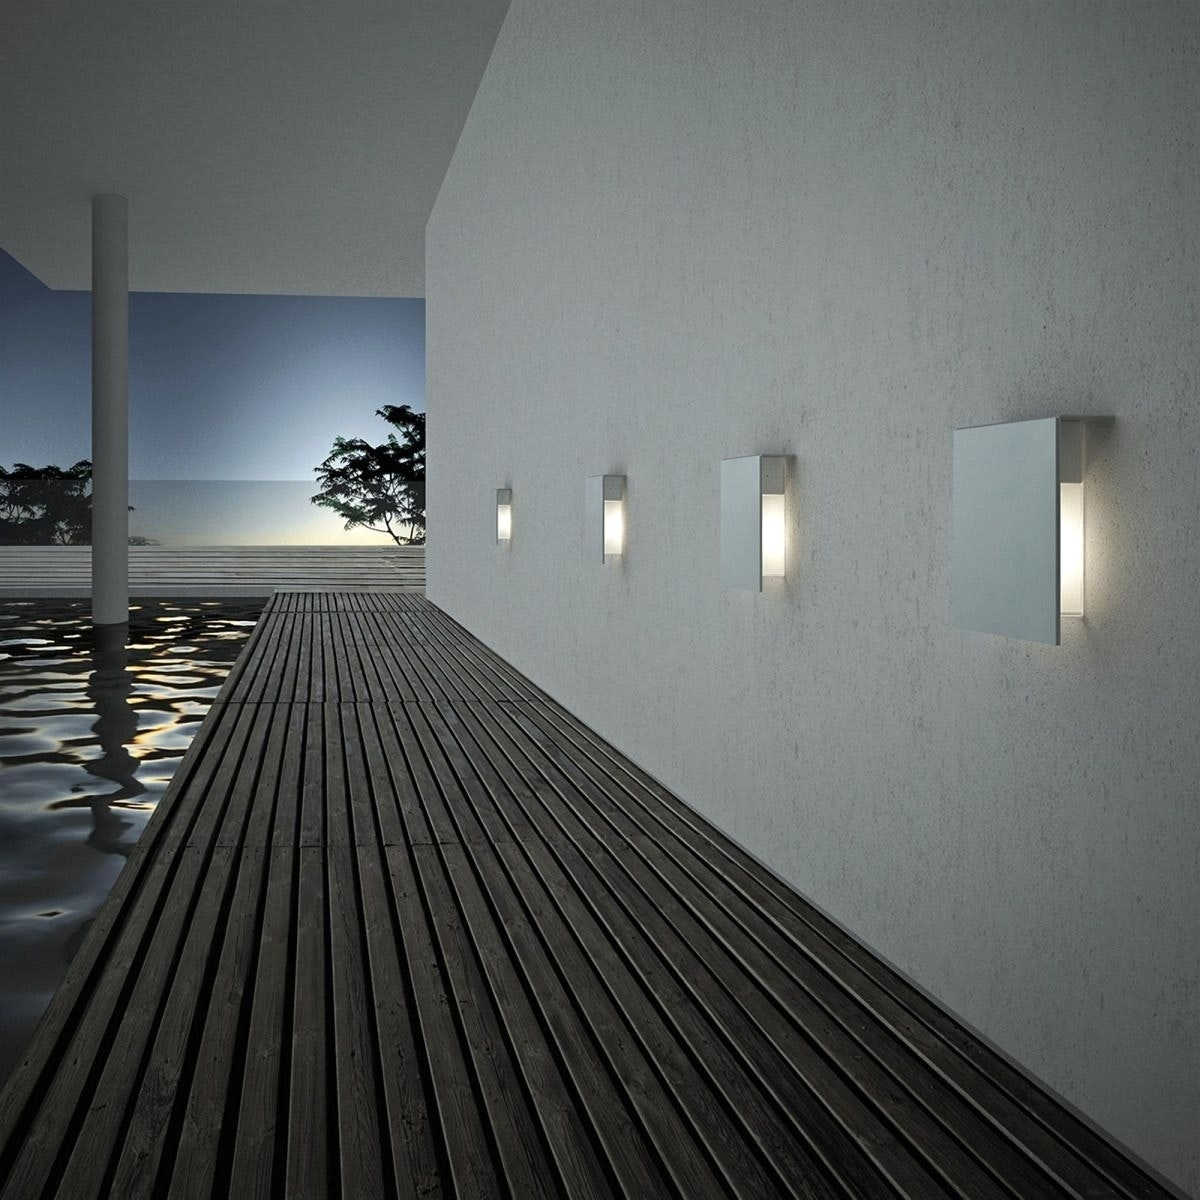 Inspiration about Top Architectural Outdoor Wall Lighting Ideas | Home Lighting In Architectural Outdoor Wall Lighting (#14 of 15)